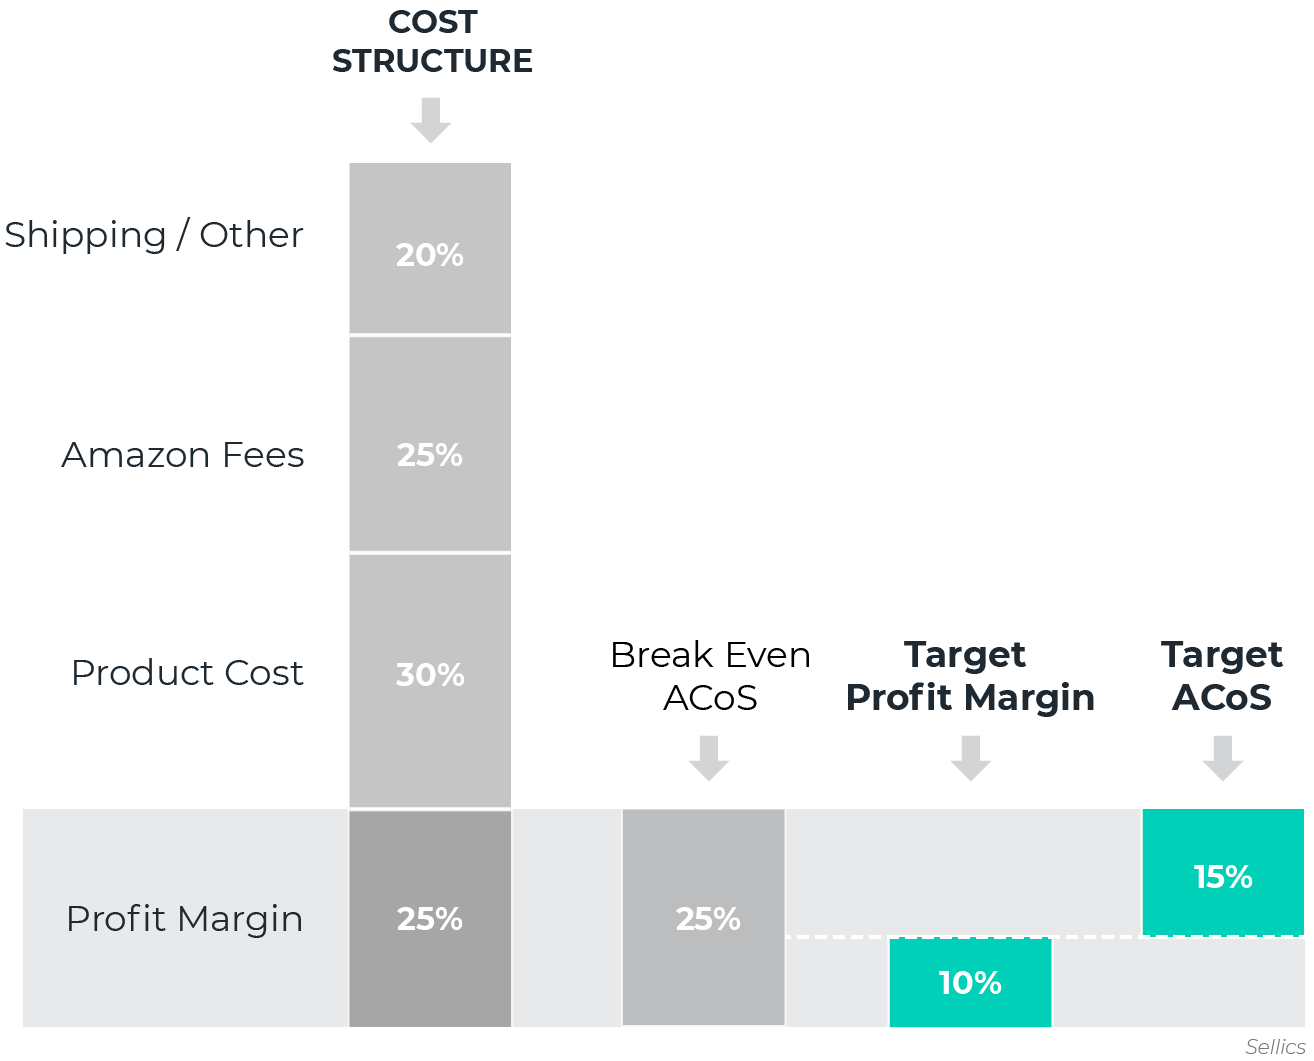 target profit margin and target Acos in the Cost Structure and Profit Margin of an Amazon Private Label Product